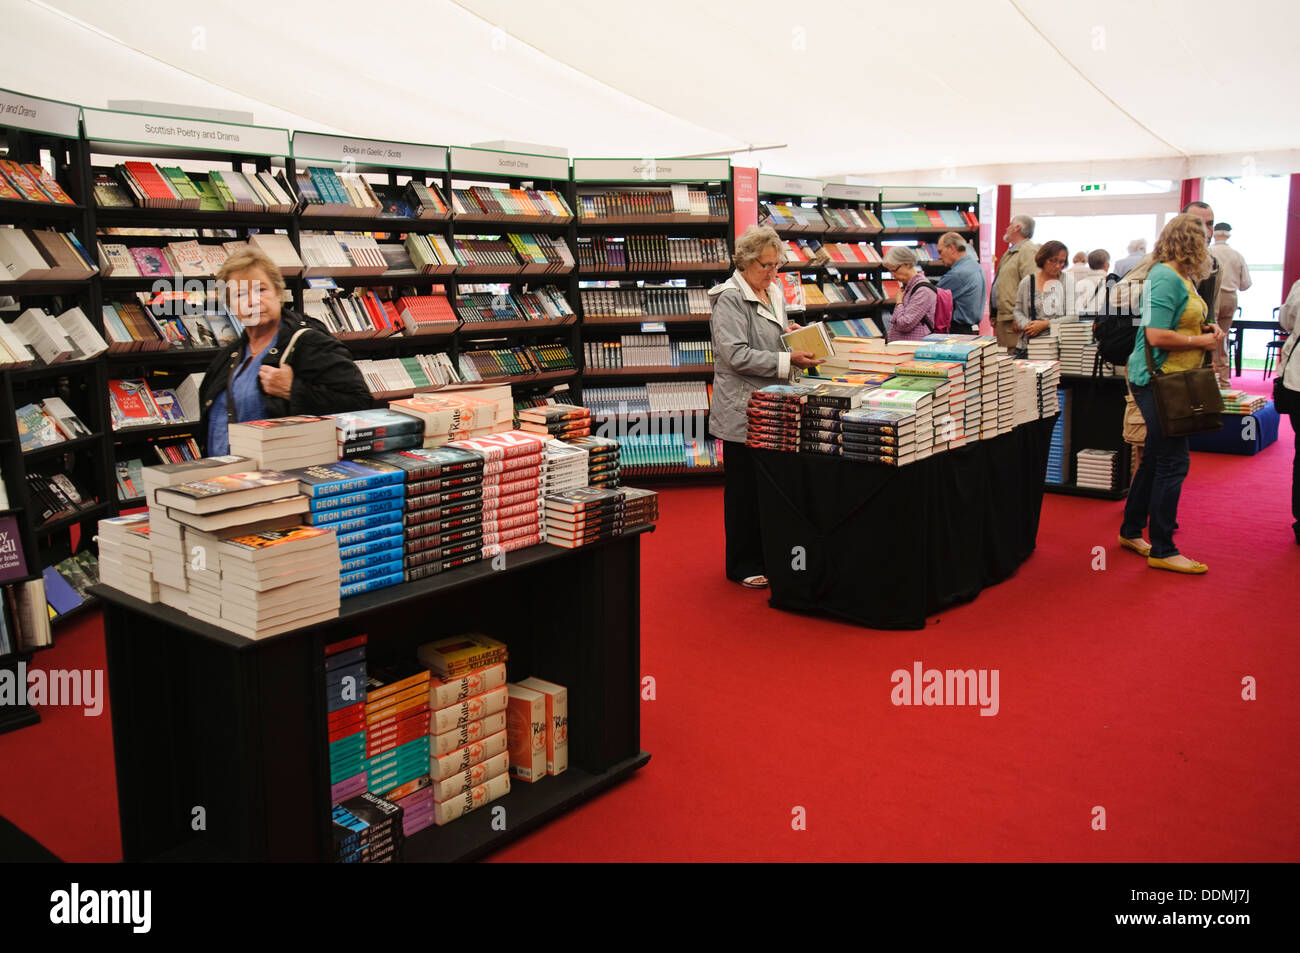 Inside the Book Tent at the Edinburgh International Book Festival. - Stock Image